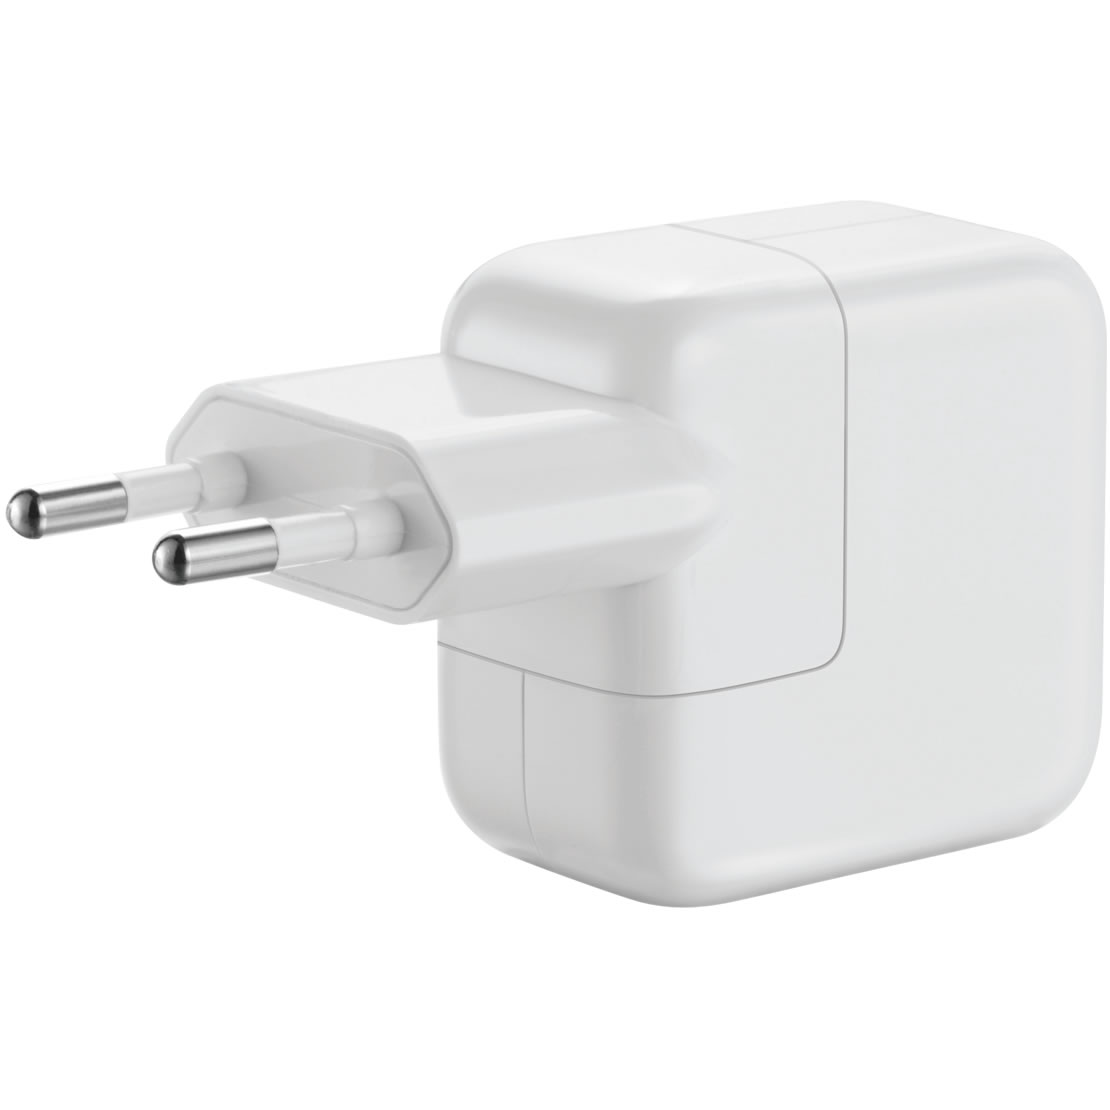 607488_AppleUsbPowerAdapter_zoom_1.jpg